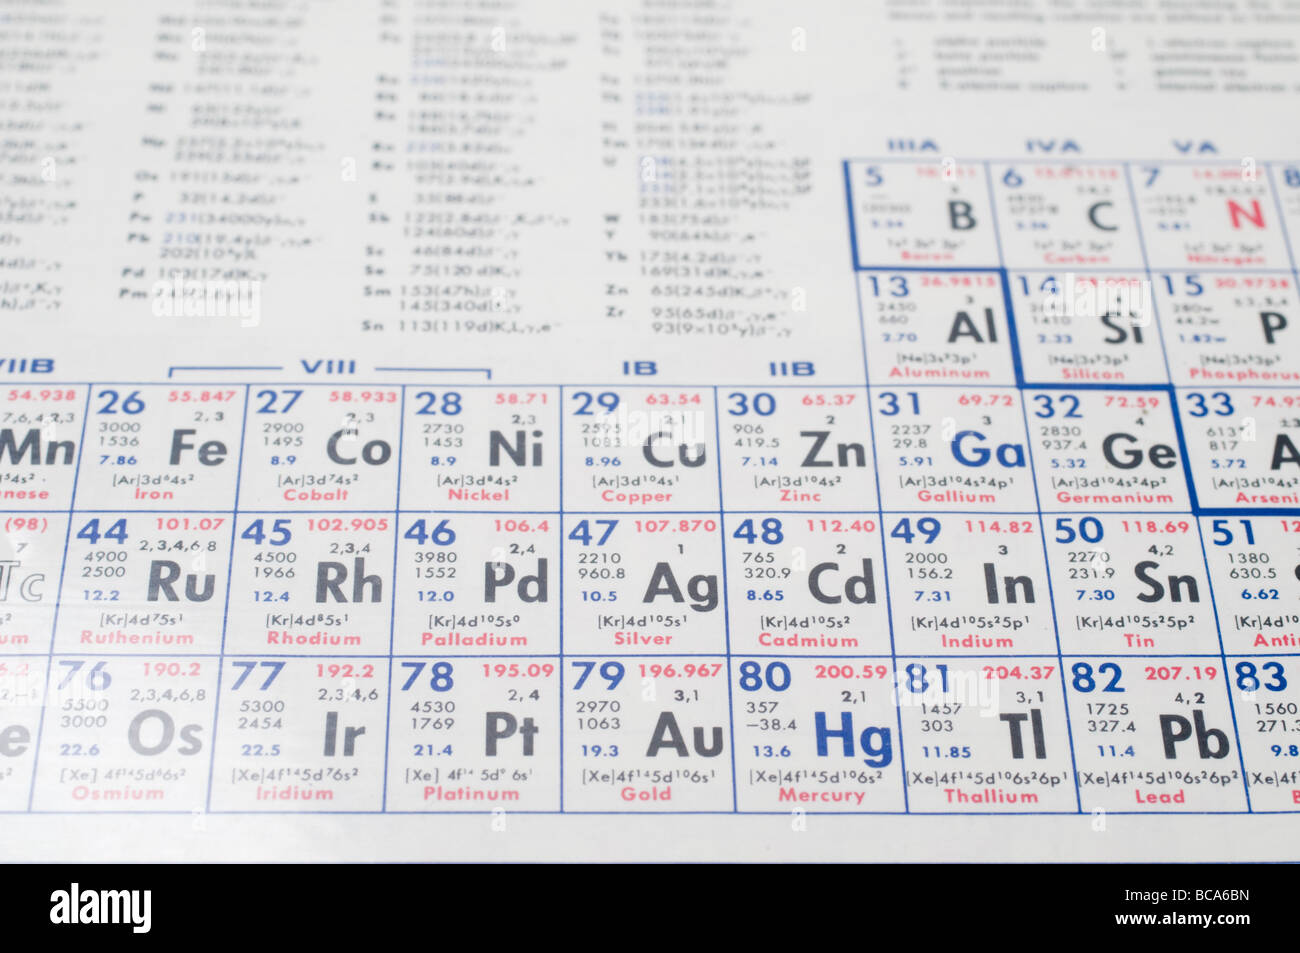 Chemical periodic table selective focus the periodic table shows the chemical periodic table selective focus the periodic table shows the chemical elements ordered by atomic number urtaz Images